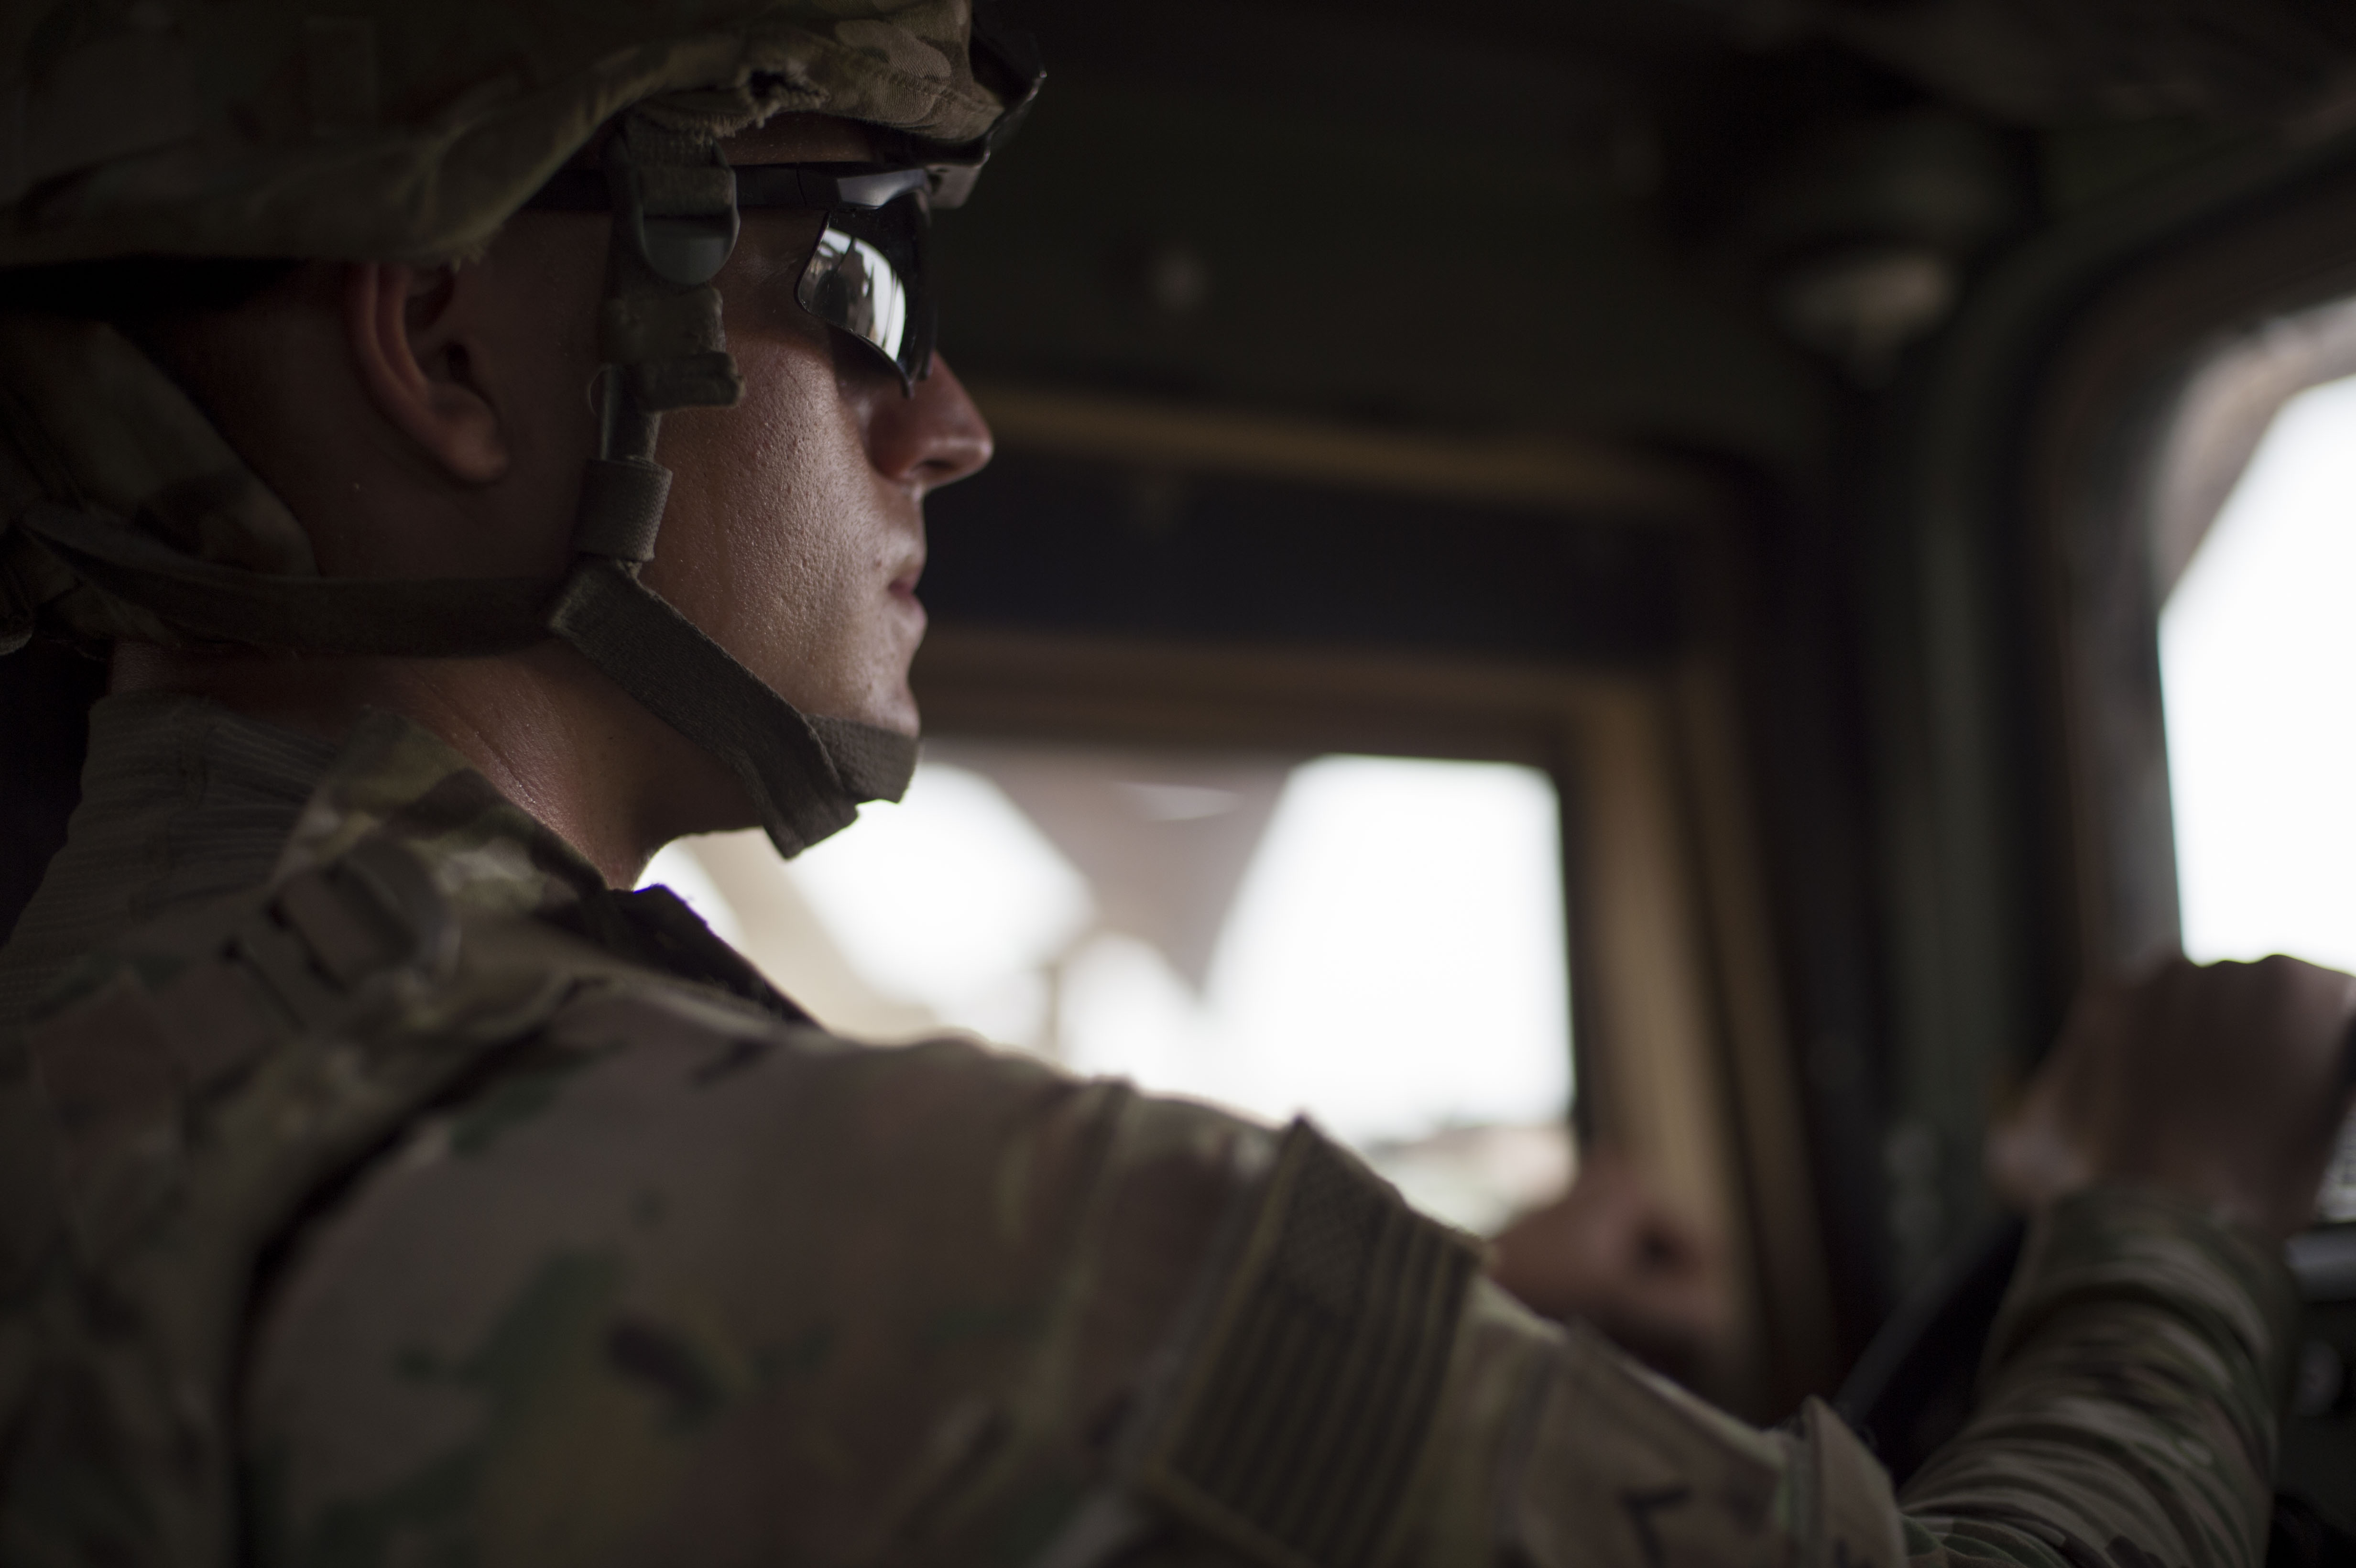 U.S. Army Pfc. Corey Boyce, Combined Joint Task Force-Horn of Africa Quick Reaction Force team member, drives a Humvee during a mission June 20, 2016, at Camp Lemonnier, Djibouti. Boyce, a native of Palm Beach Gardens, Fla., is a part of the 1st Battalion, 124th Infantry Regiment that assumed the QRF mission in May. (U.S. Air Force photo by Staff Sgt. Eric Summers Jr.)